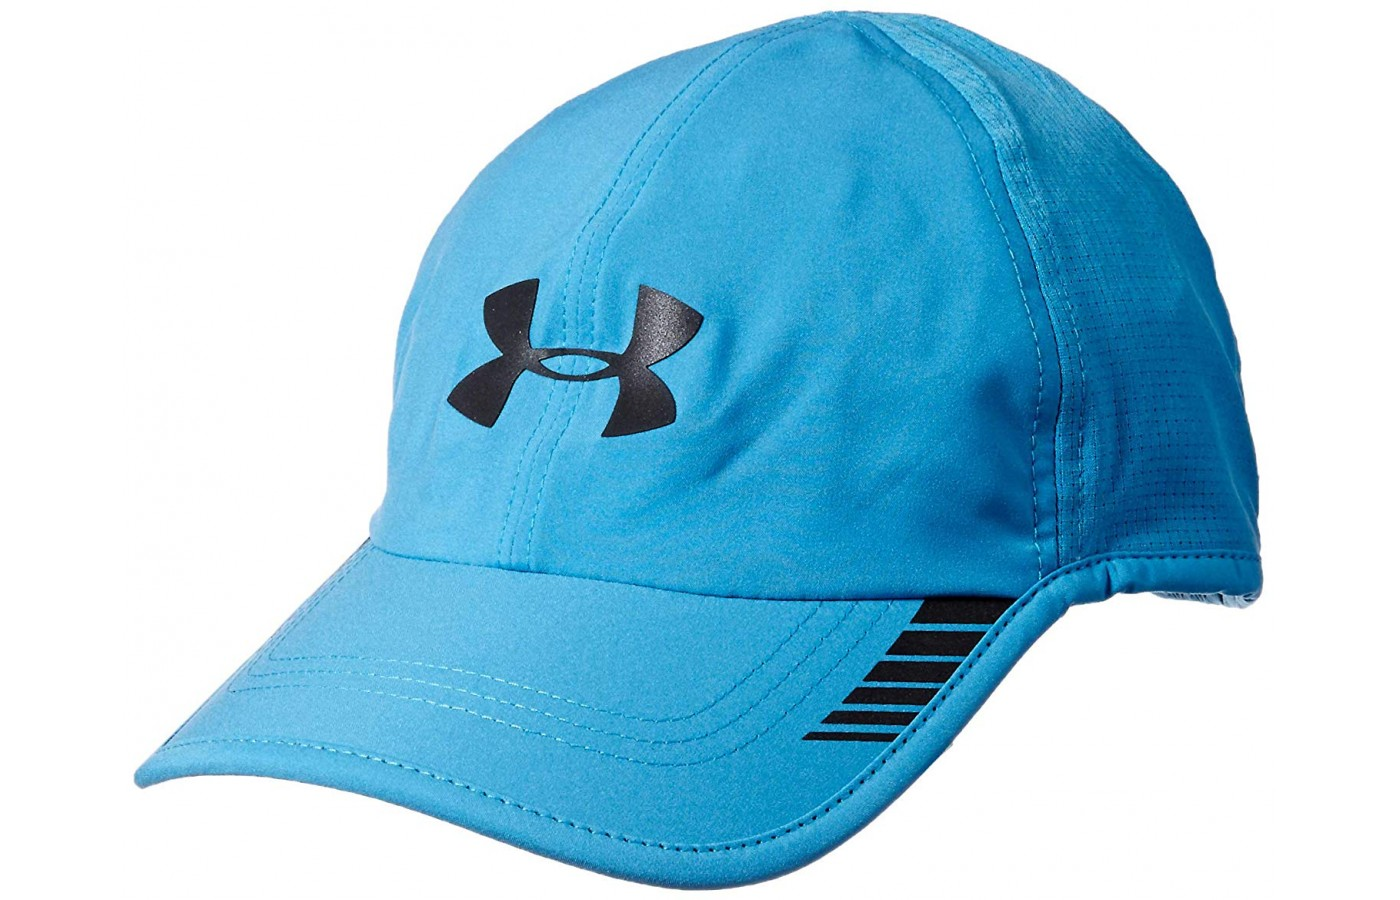 Under Armour Launch AmrourVent angle